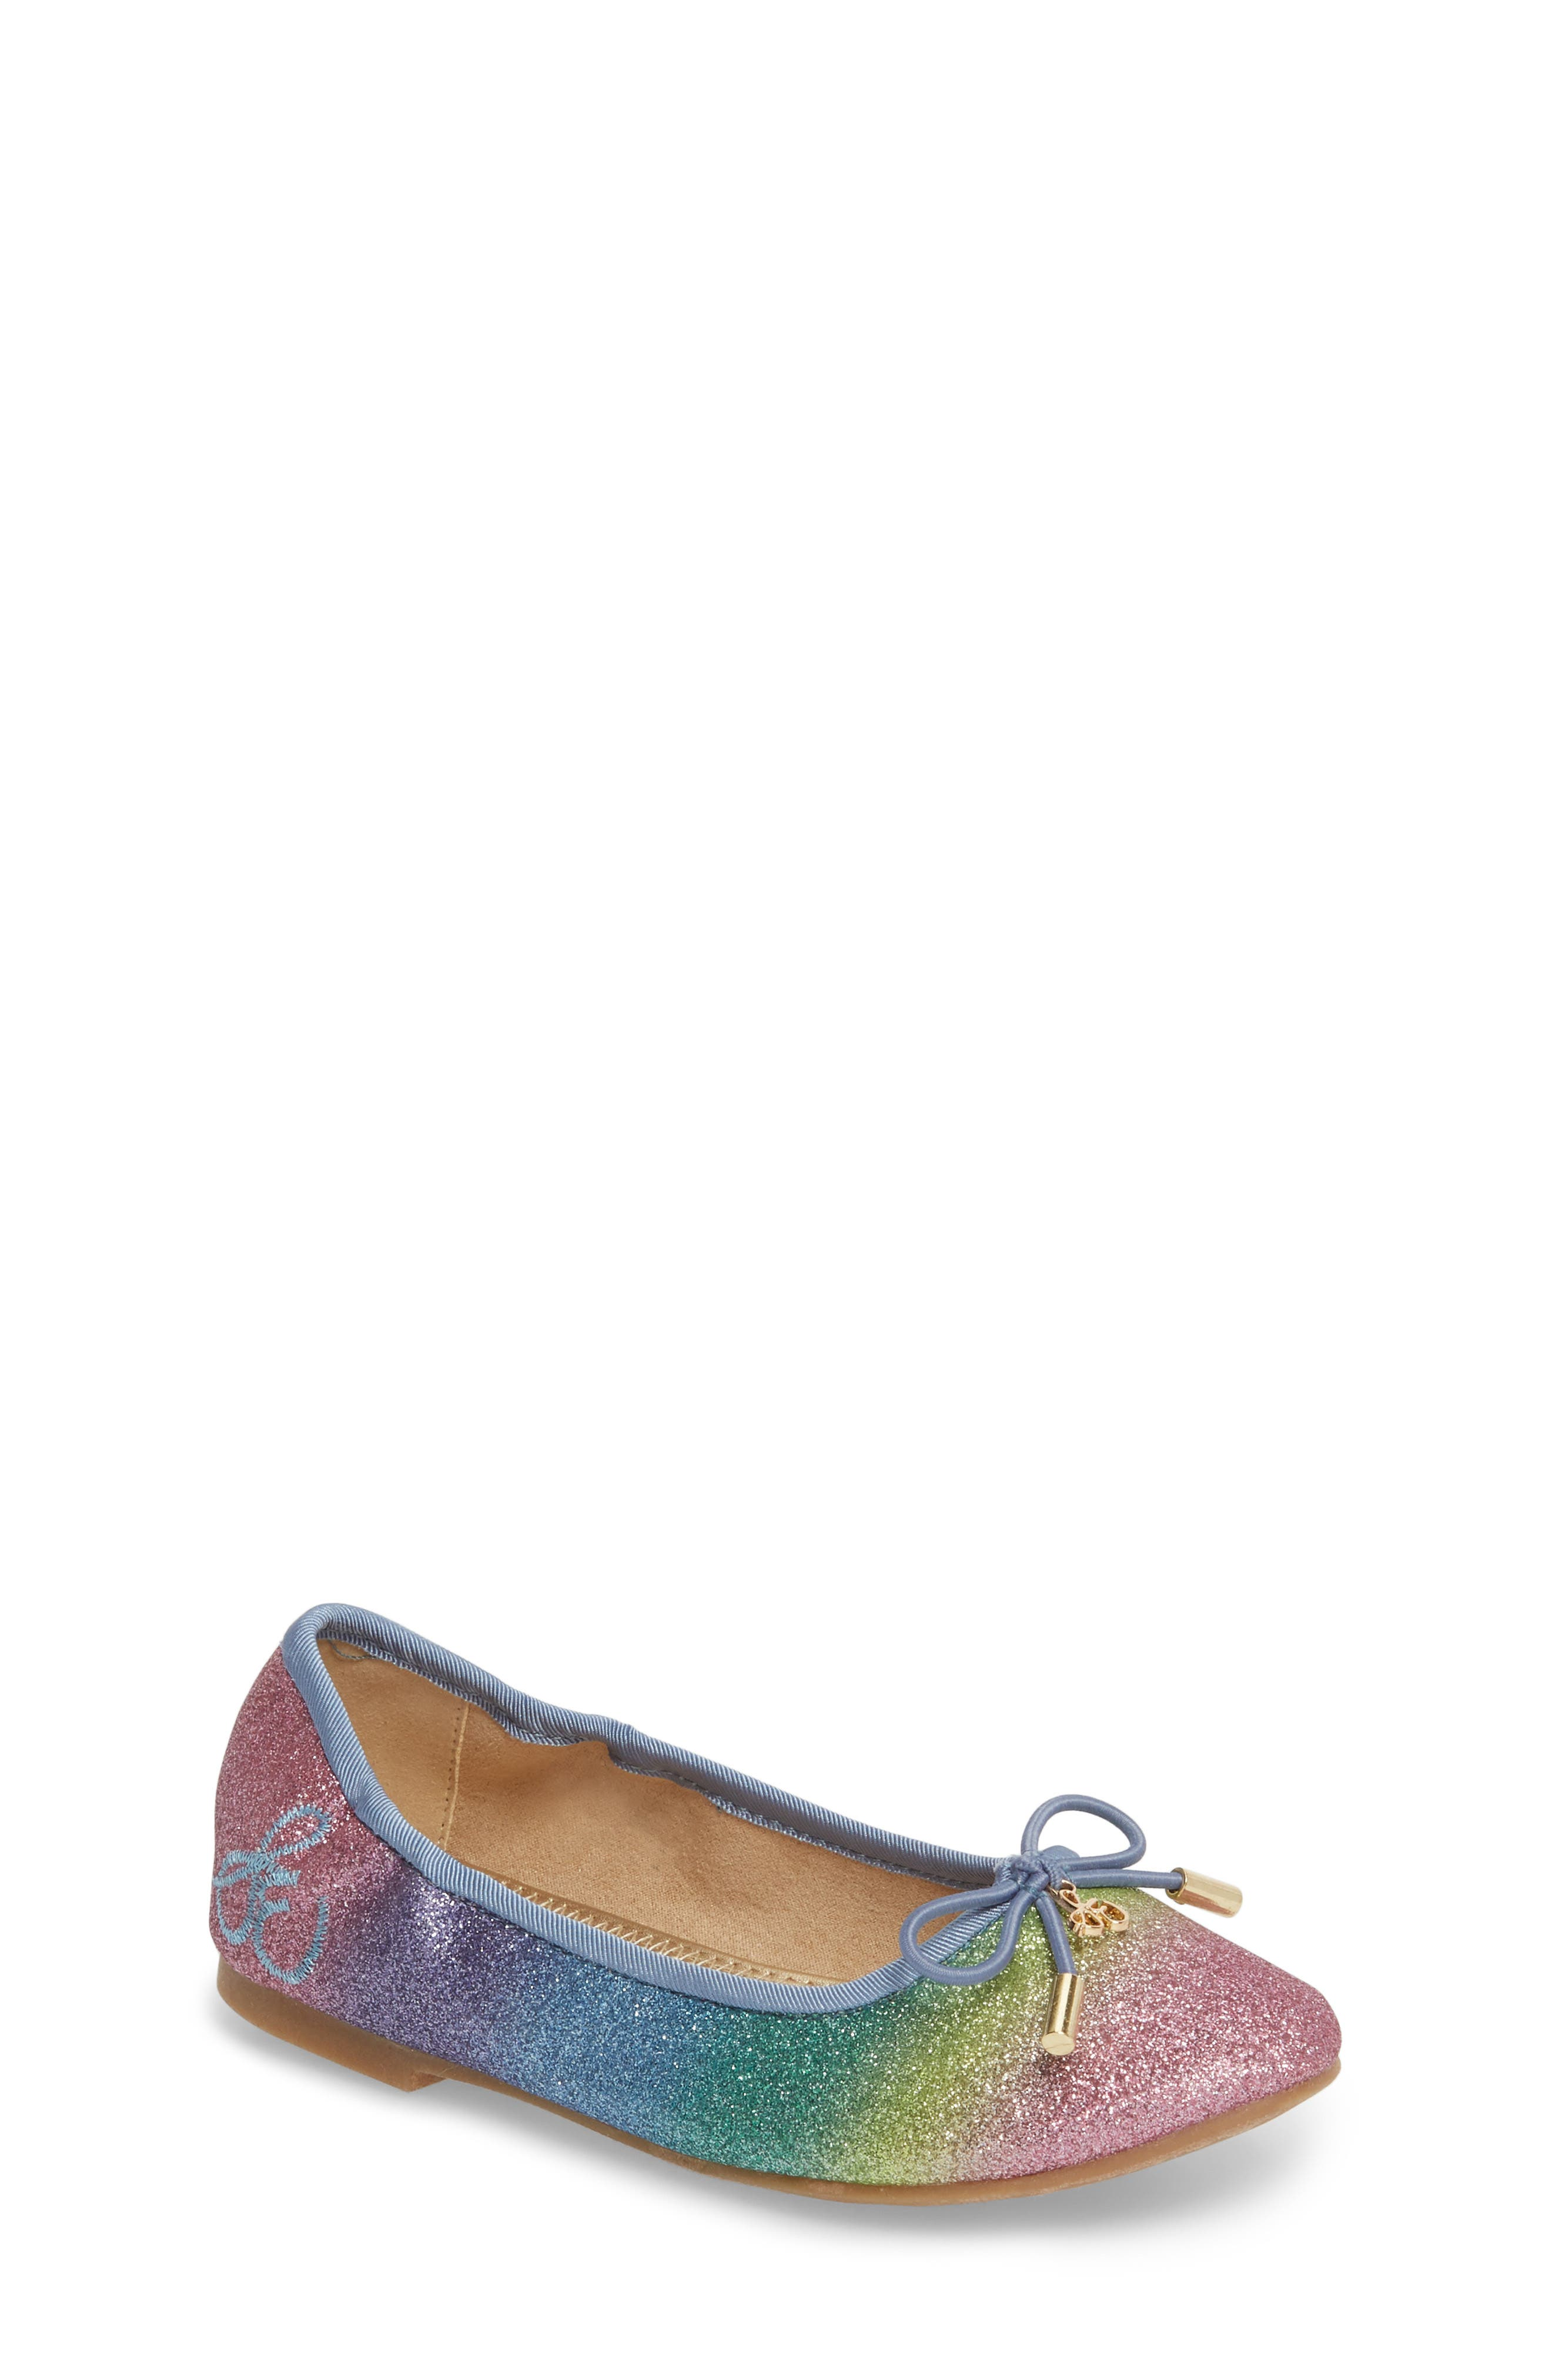 Felicia Glitter Ballet Flat,                             Main thumbnail 1, color,                             Rainbow Ombre